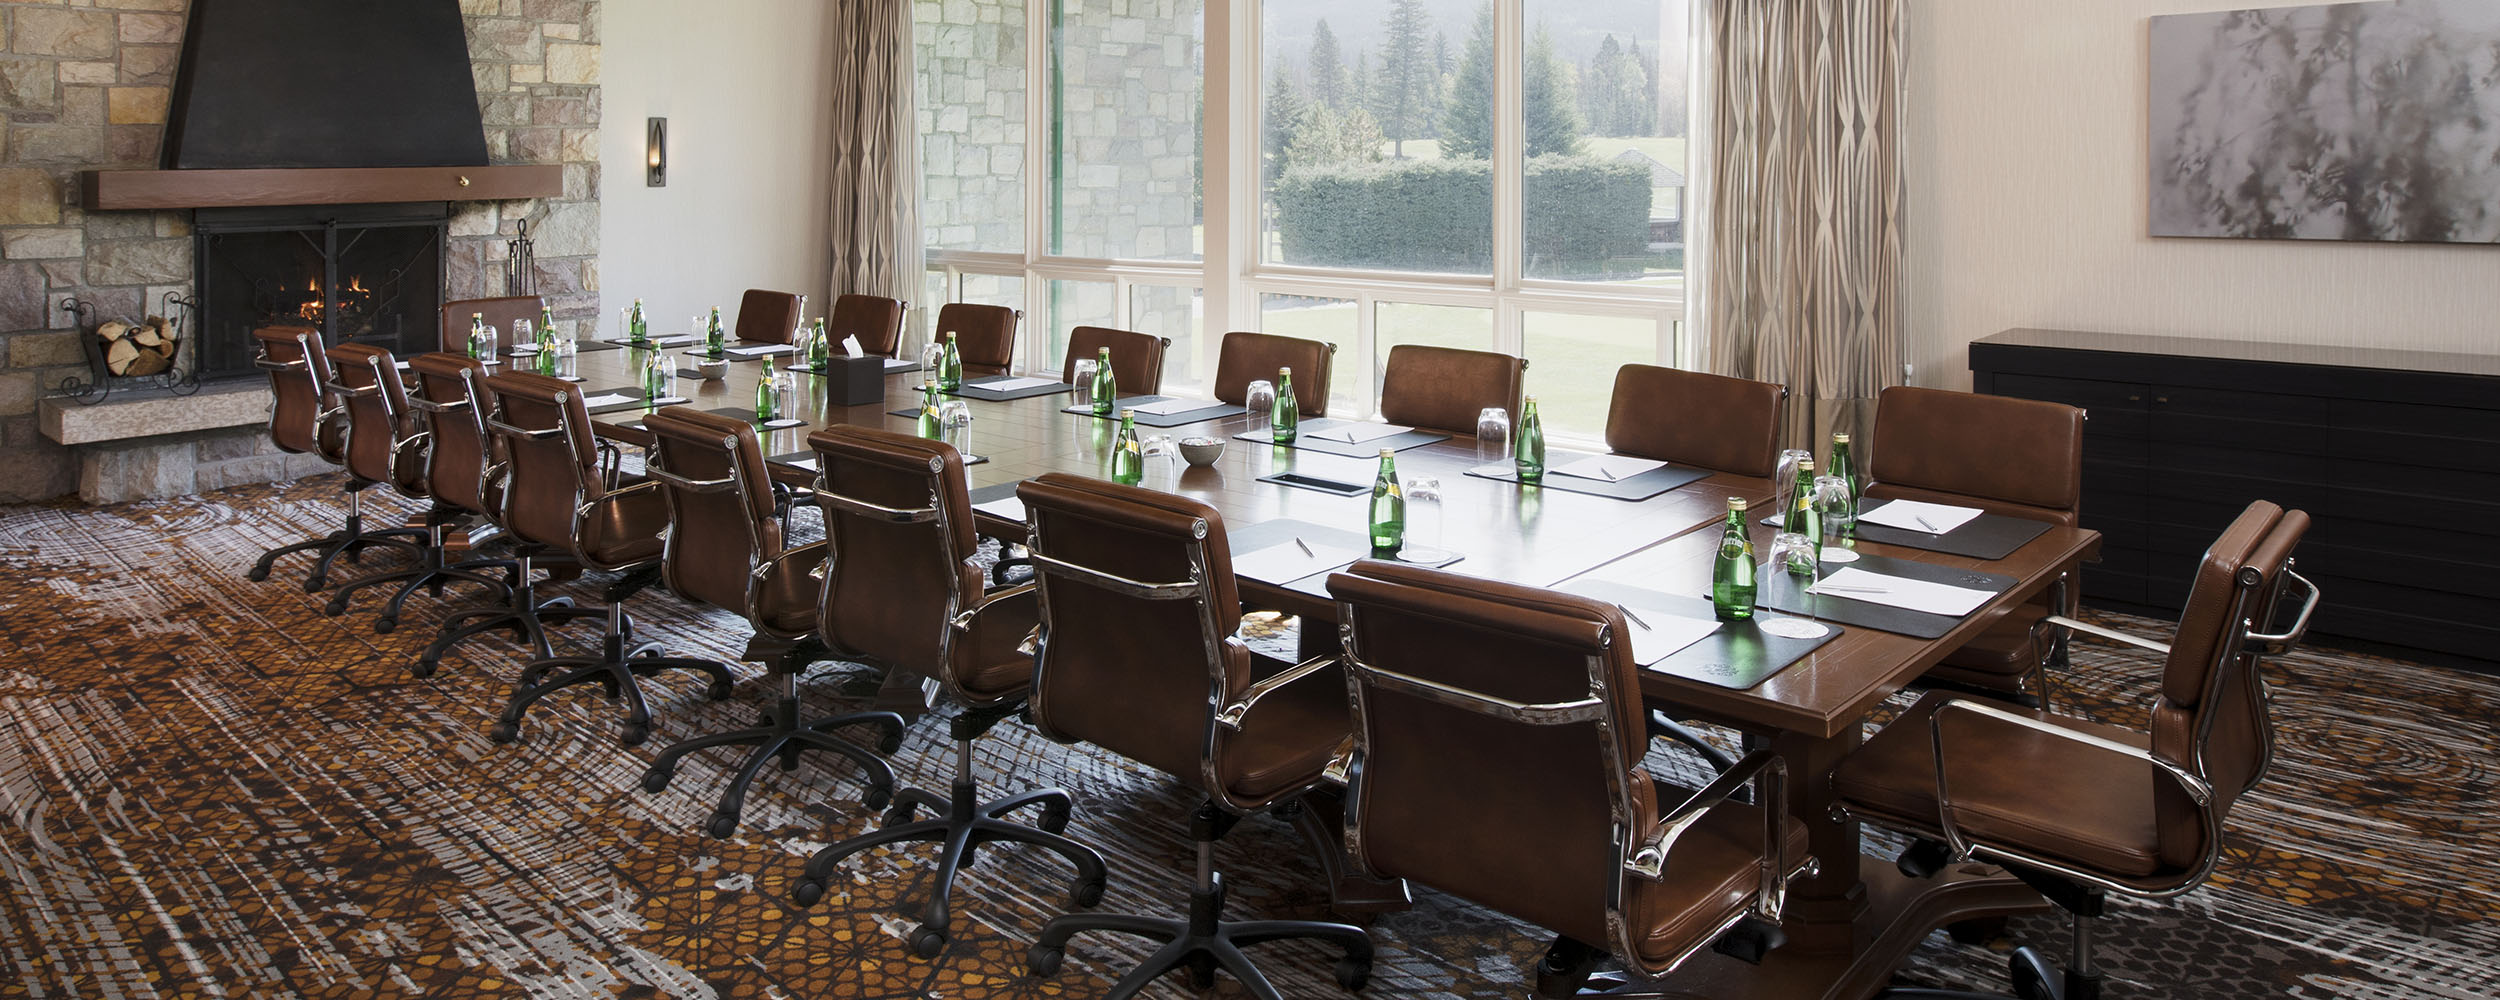 Thompson Boardroom with Fireplace and Large Windows Set for a Meeting